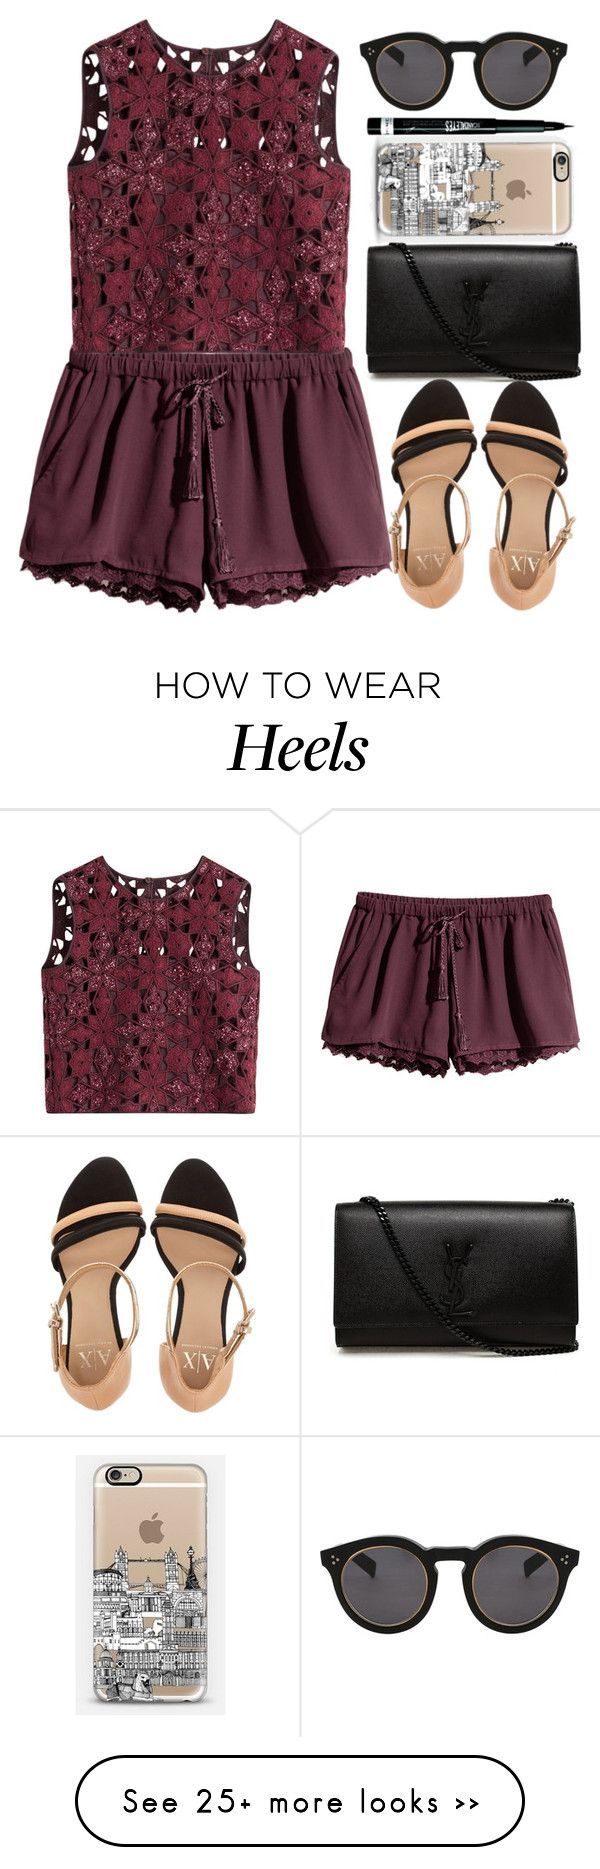 """WWSD"" by krizan on Polyvore featuring H&M, Alberta Ferretti, Yves Saint Laurent, Illesteva, Armani Exchange, Casetify and Rimmel"